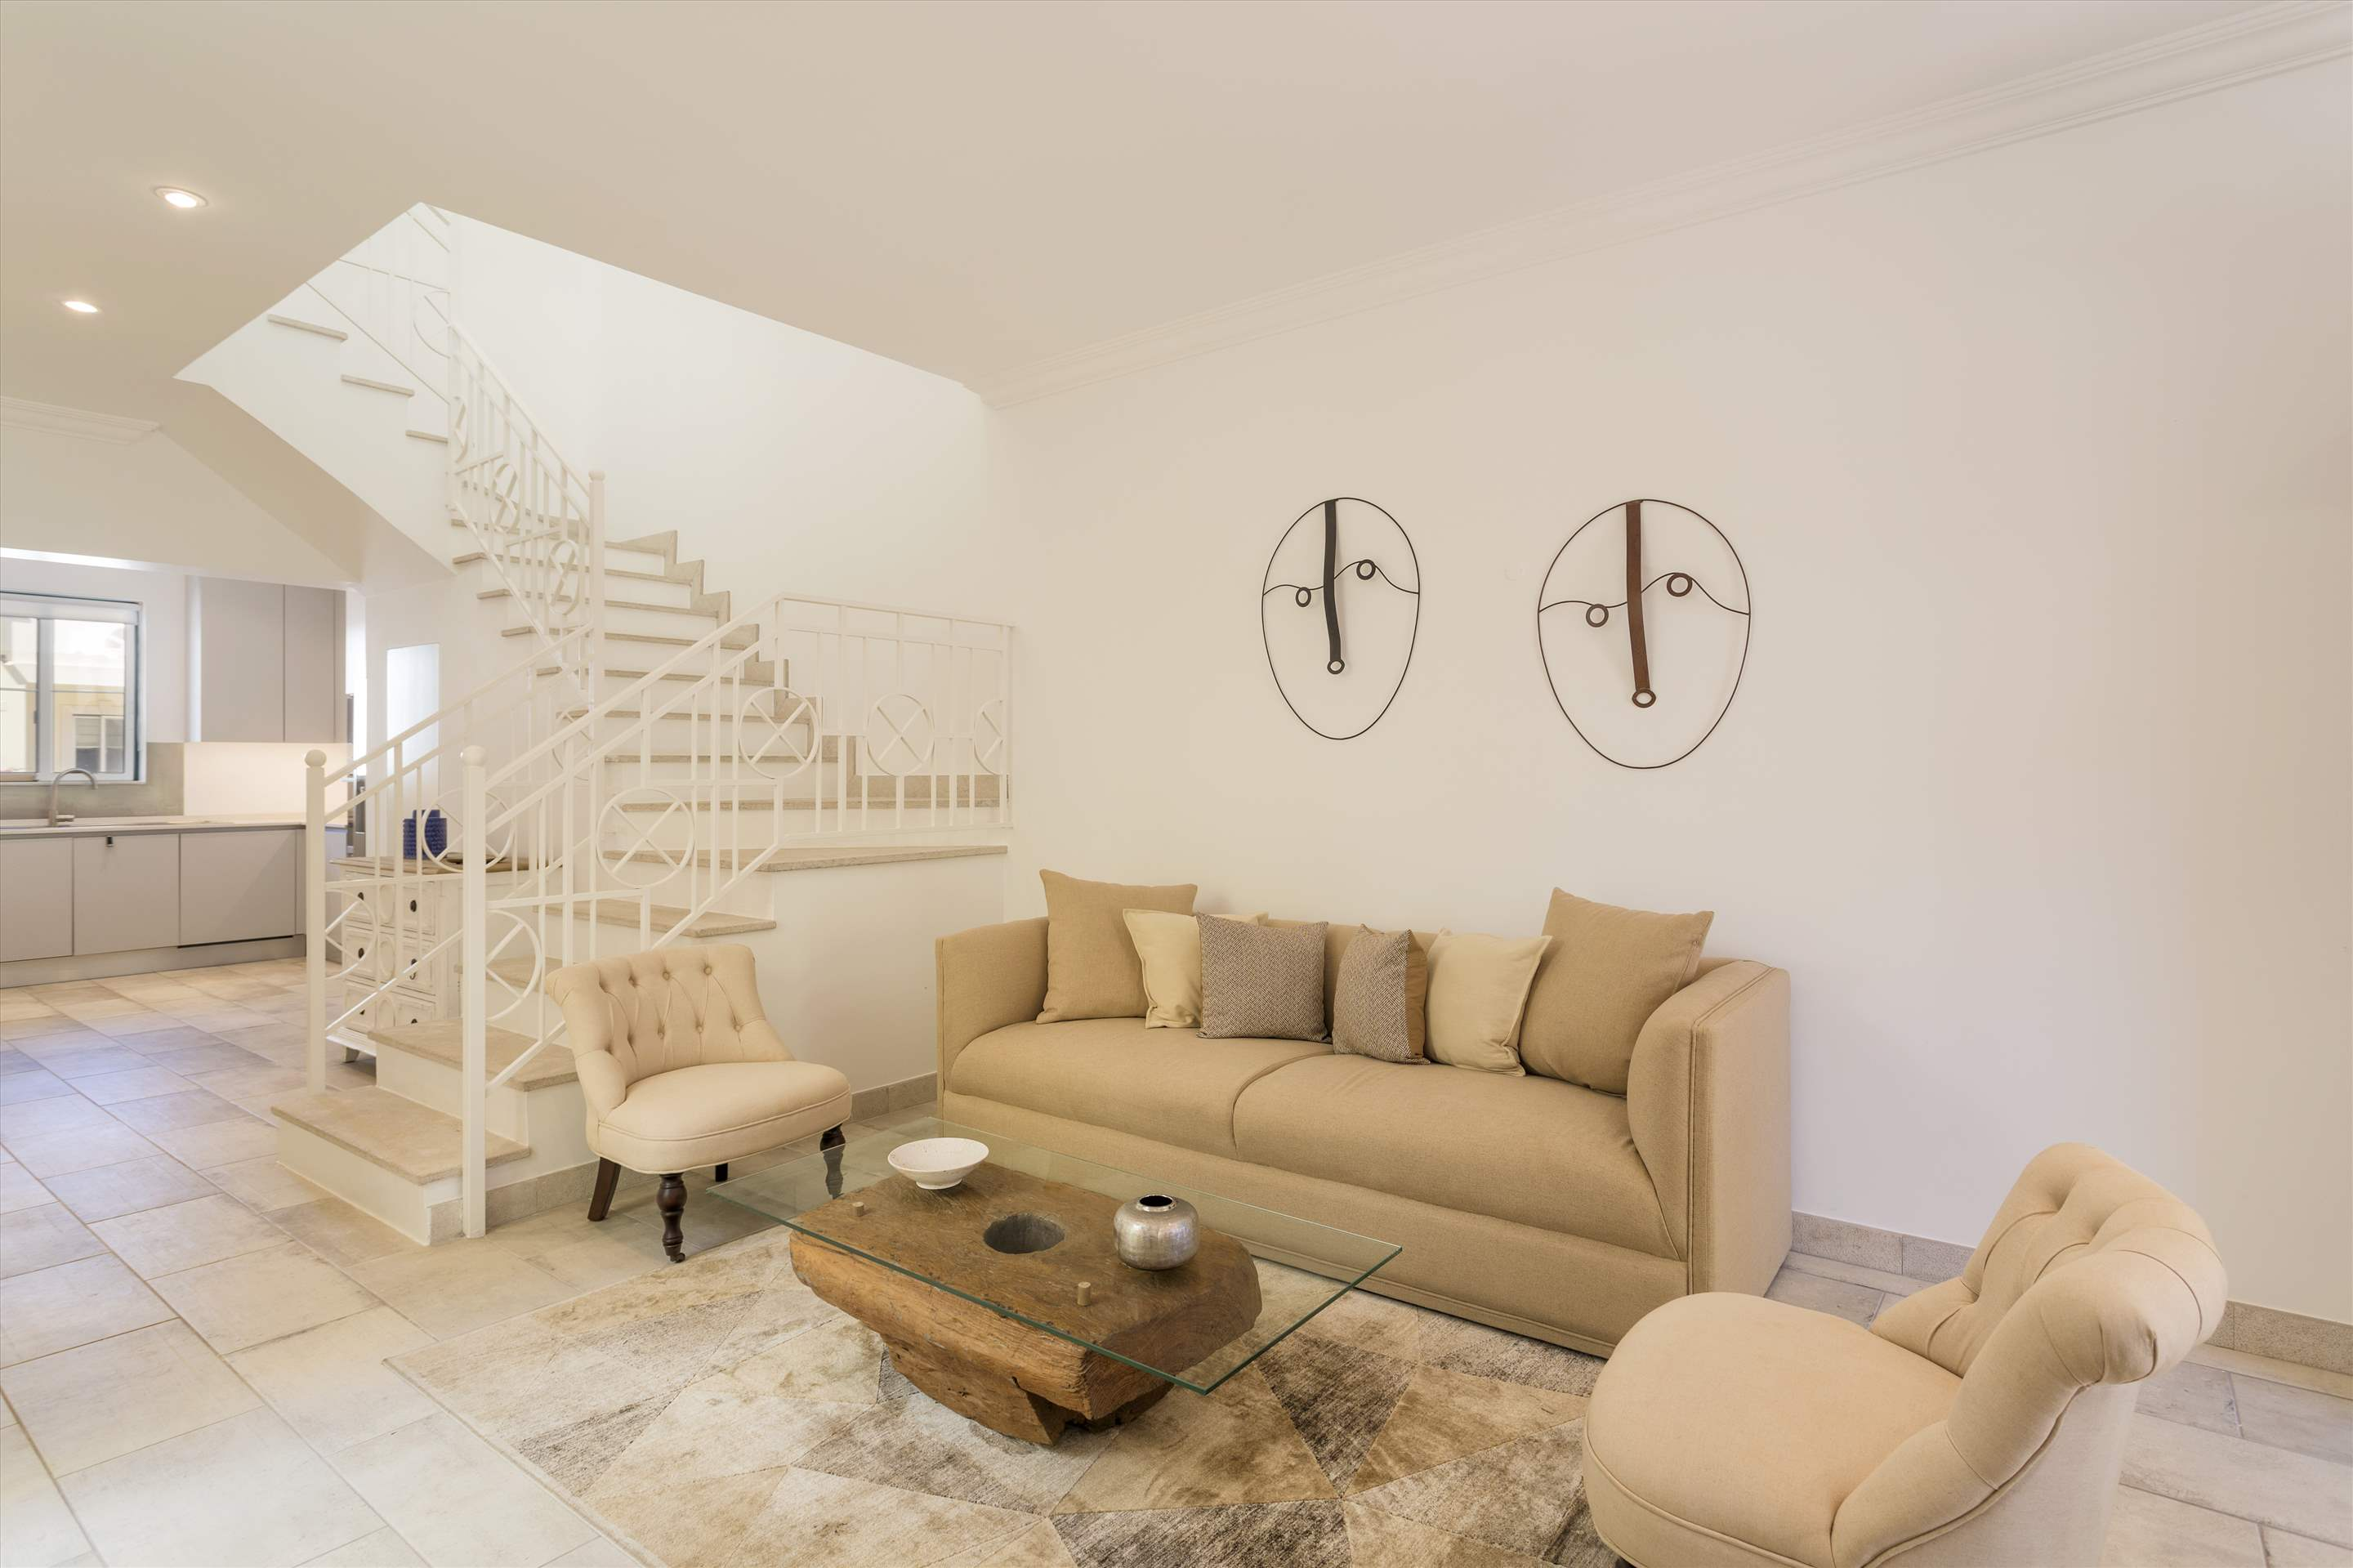 Townhouse Jessica, 3 bedroom villa in Quinta do Lago, Algarve Photo #8